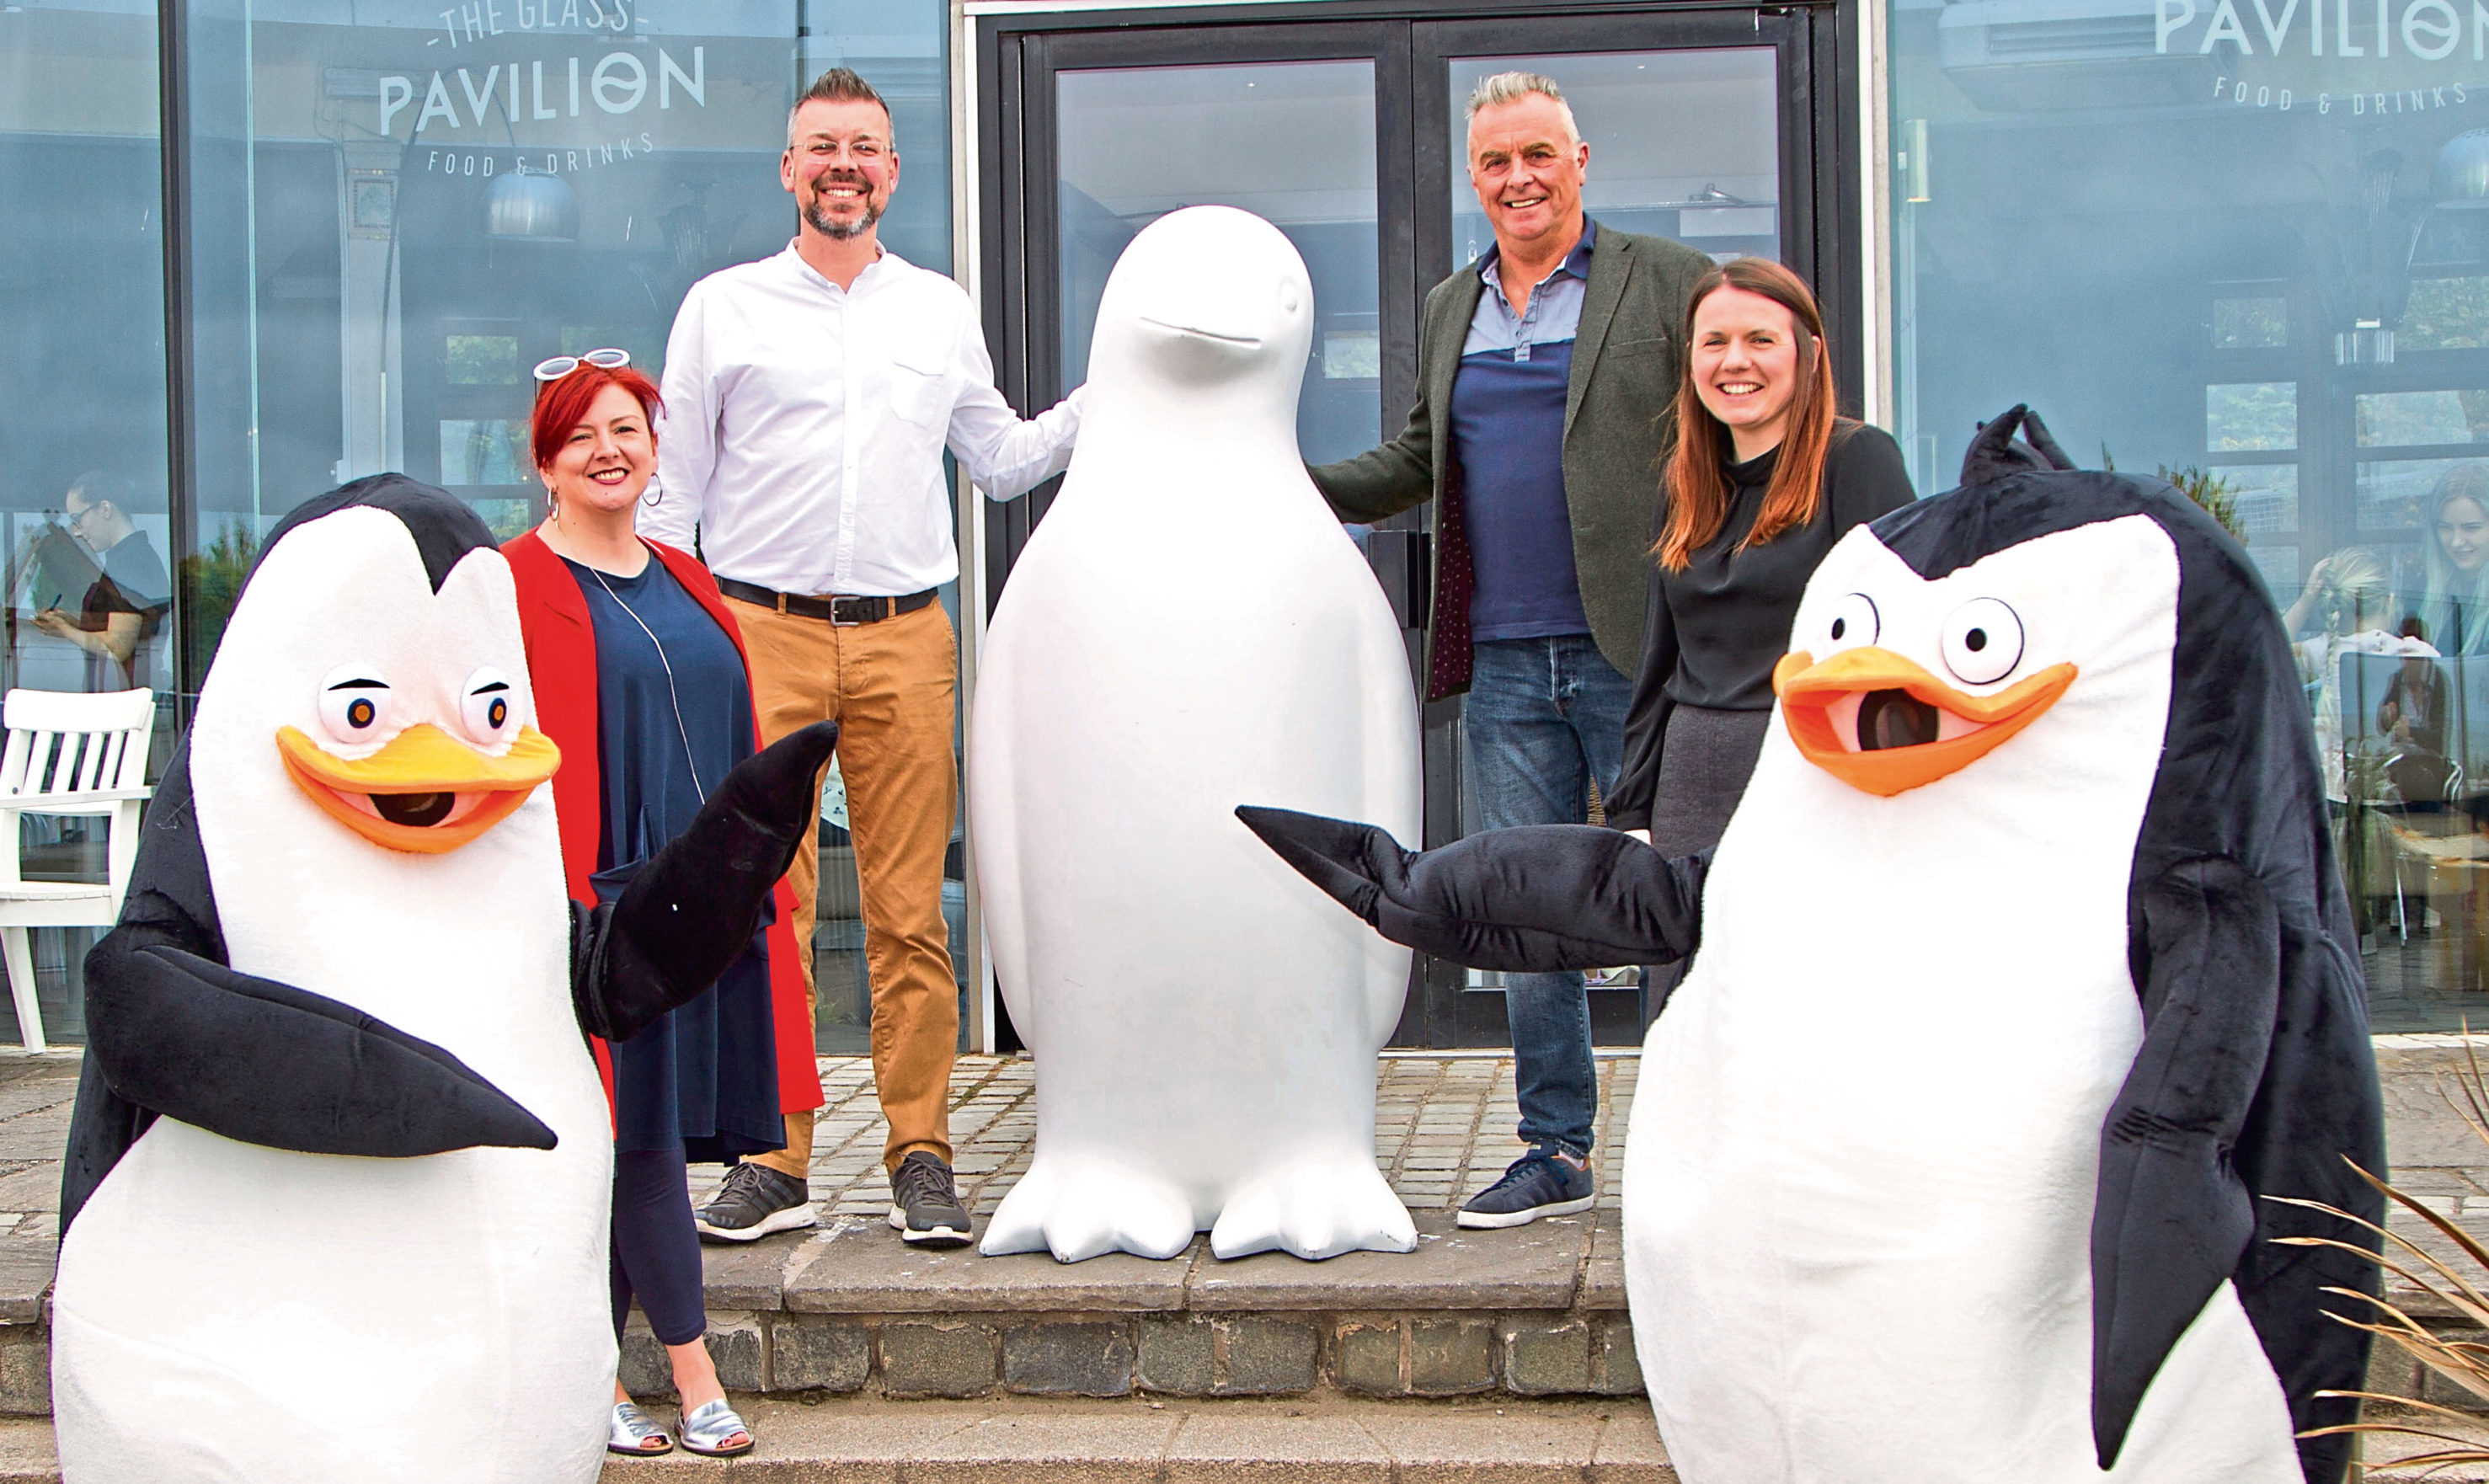 From left: Jan McTaggart of BFTA, John Richardson of the Glass Pavilion, BFTA chairman Steve James and Sarah Young of Dundee and Angus Chamber of Commerce.